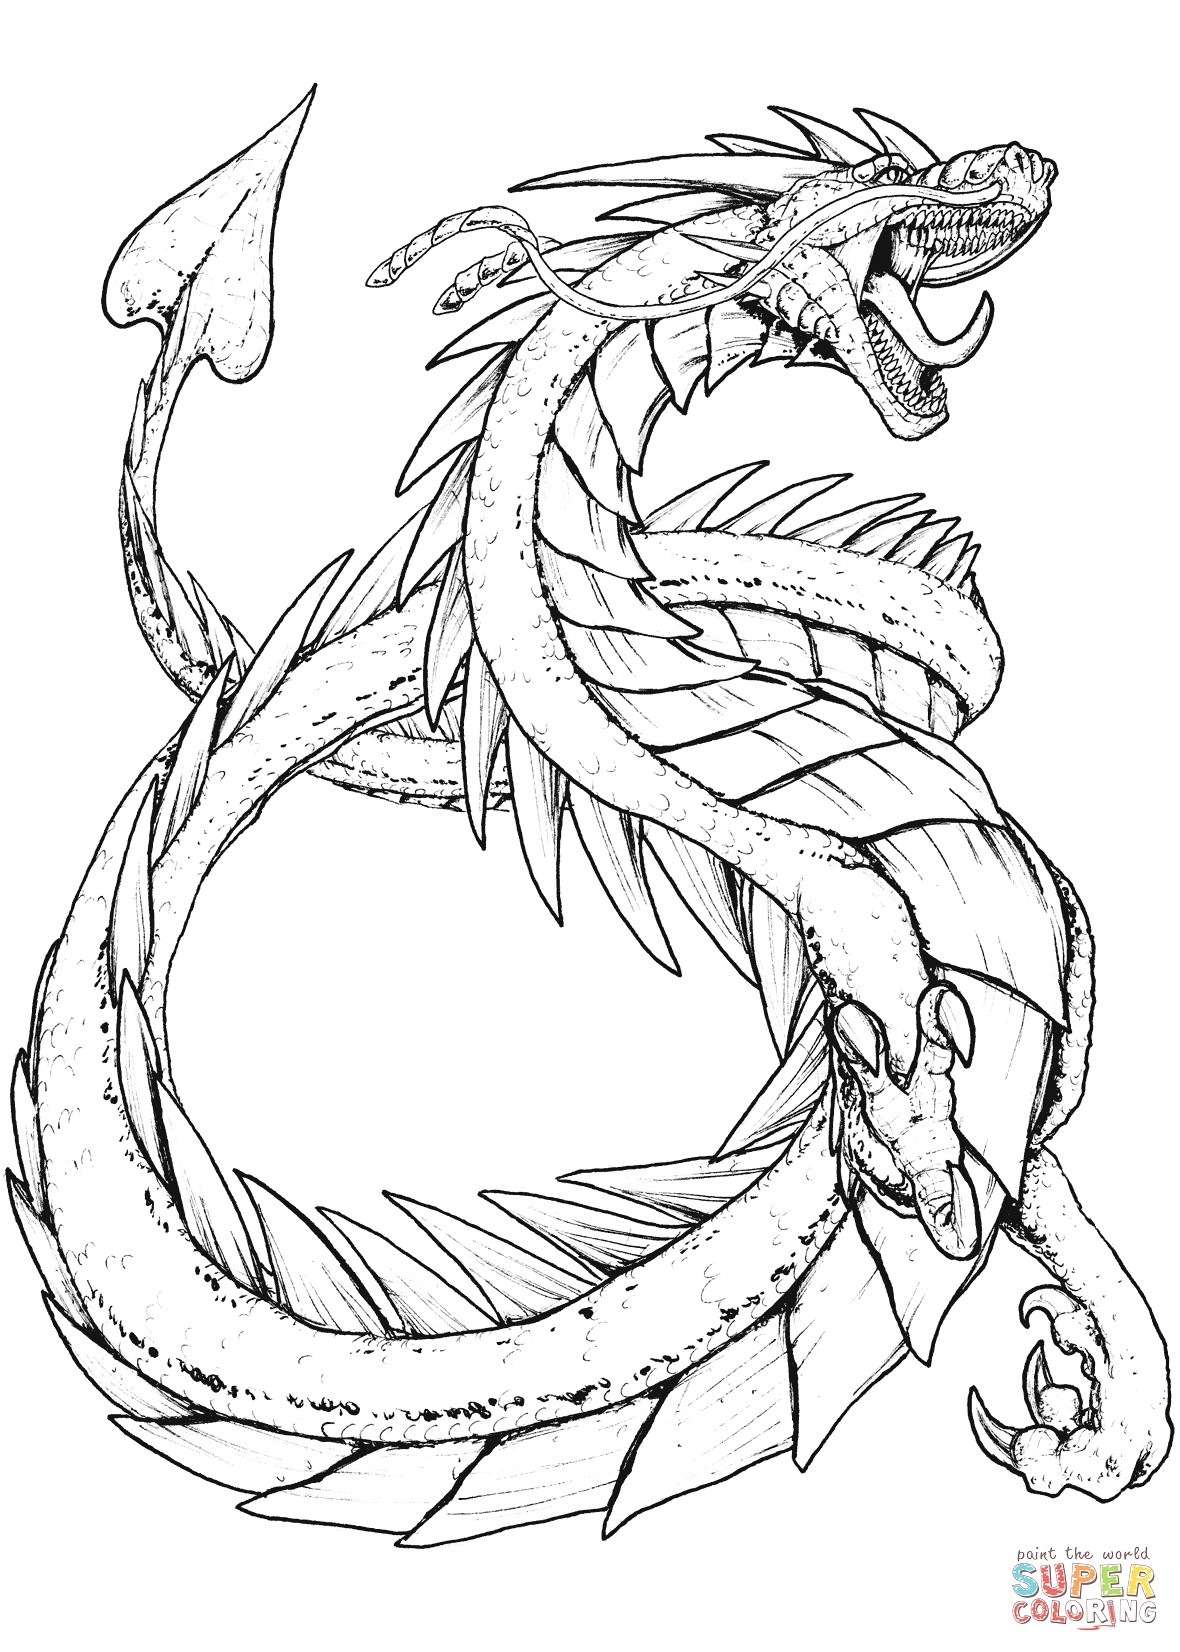 Fantasy Creatures Coloring Pages At Getcolorings